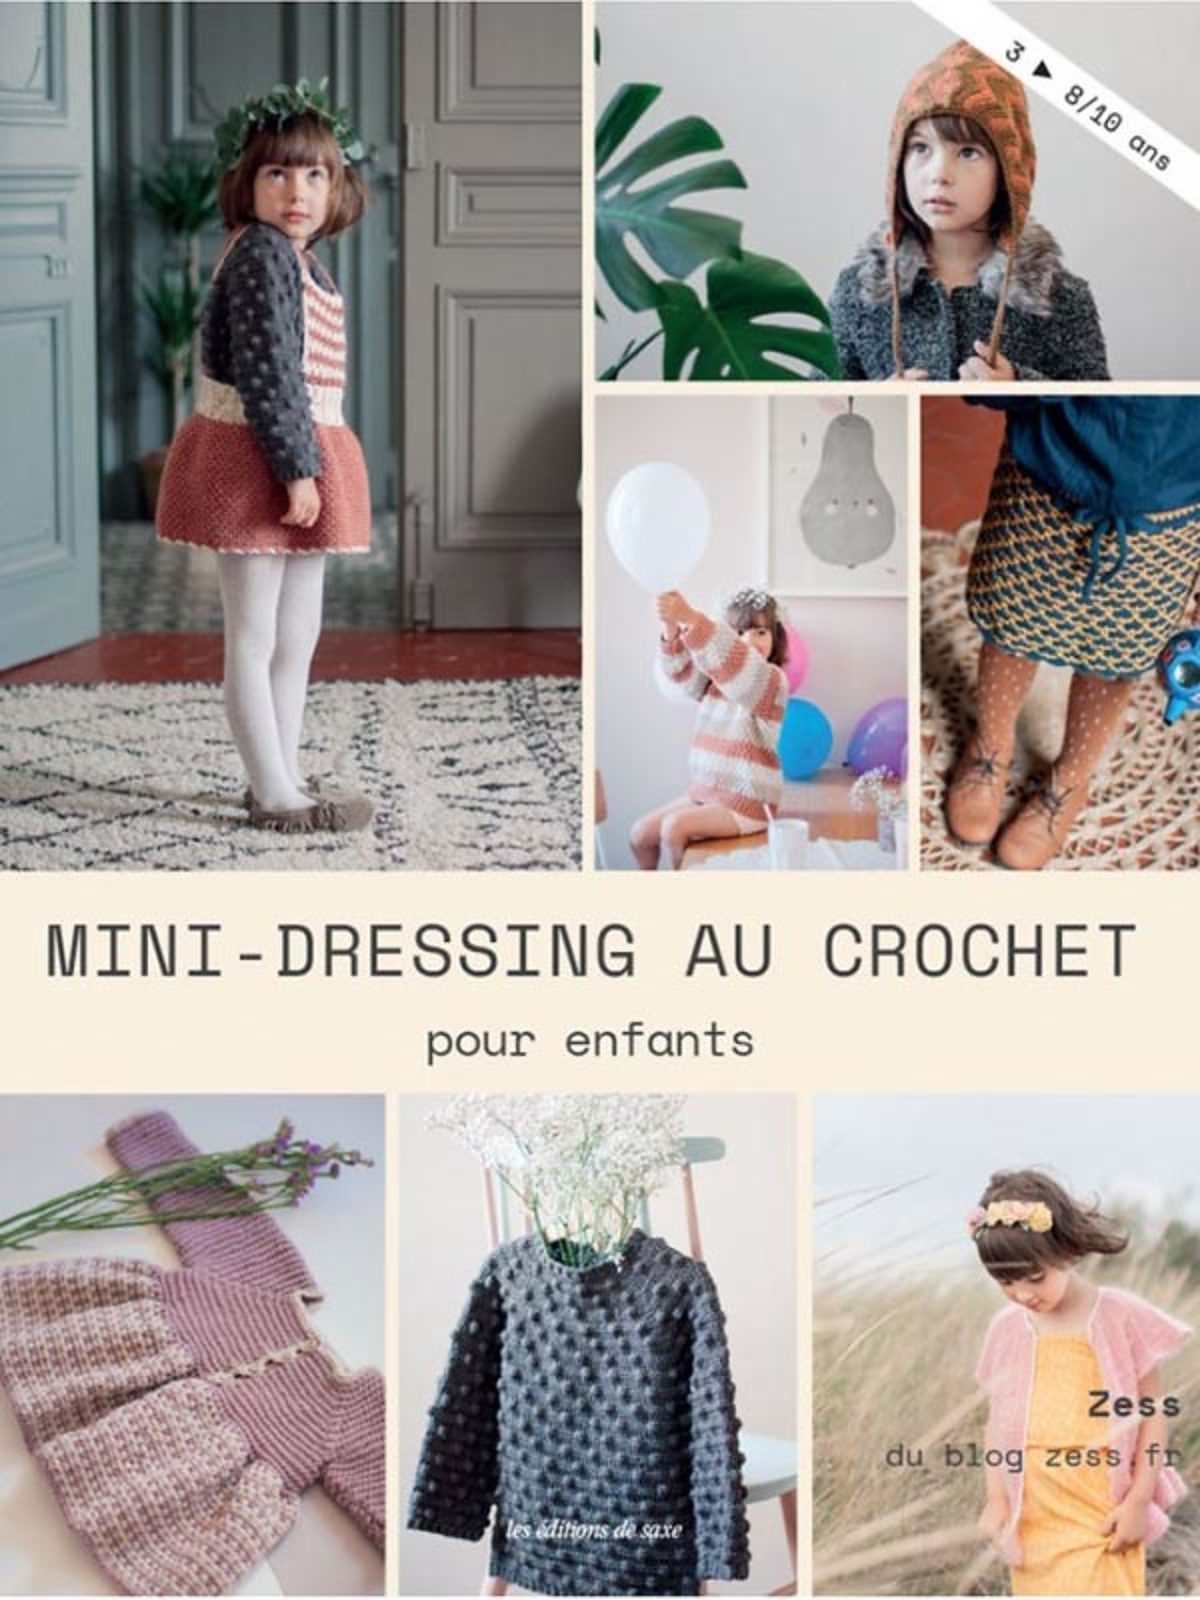 mini-dressing-au-crochet